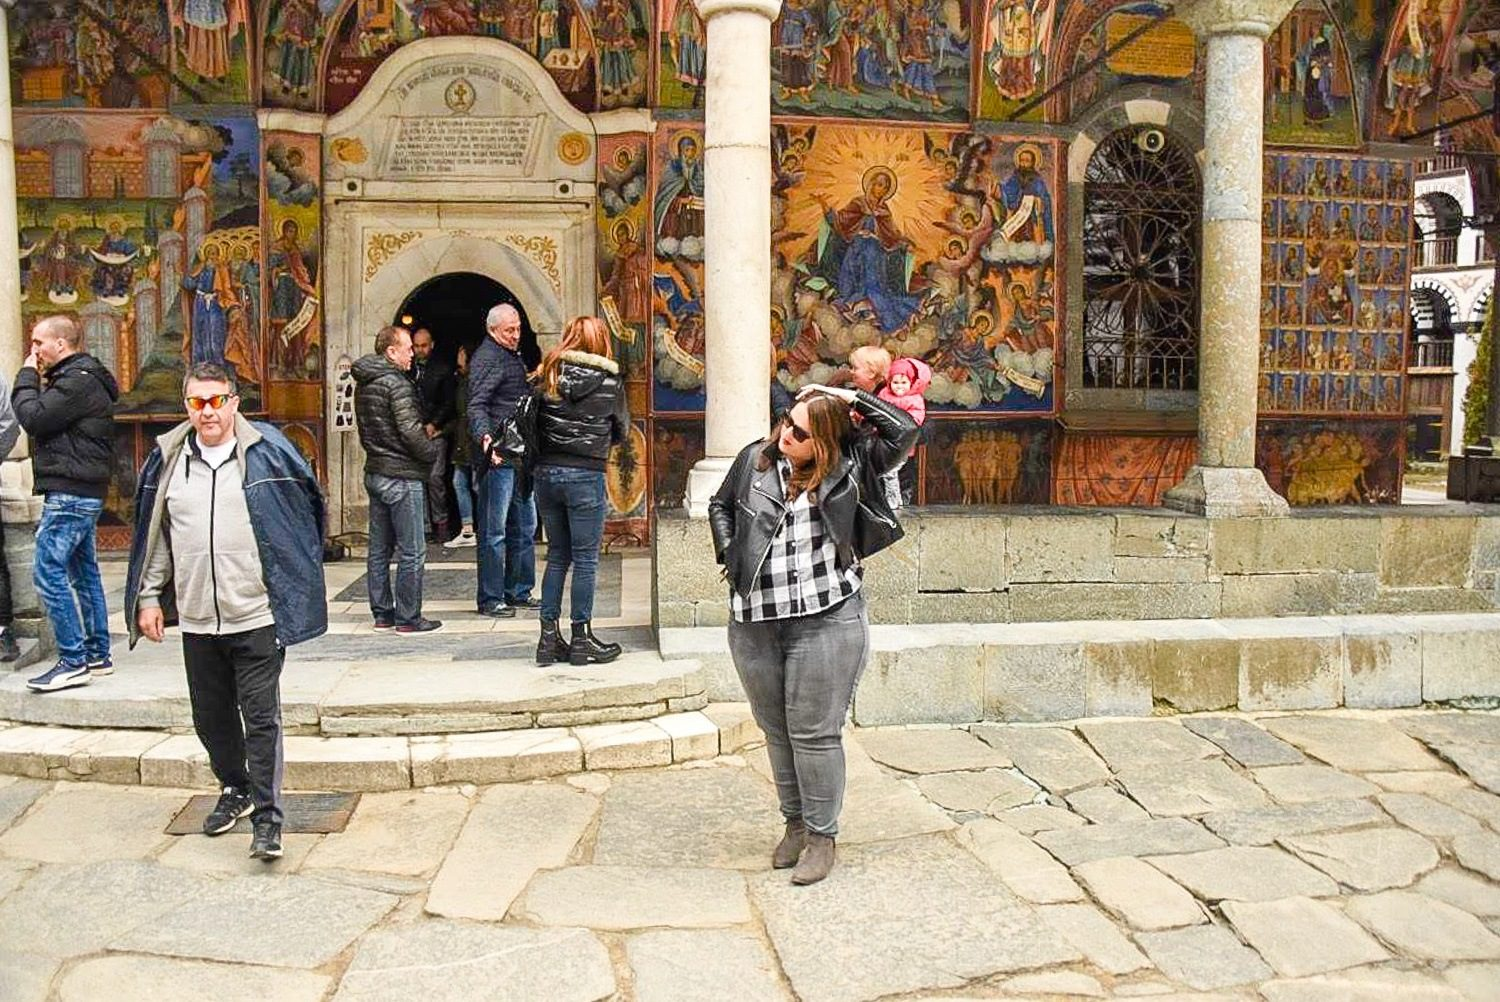 Rila Monastery, one of Bulgaria's UNESCO World Heritage Sites (and one of Stephanie's favorite buildings in the world)